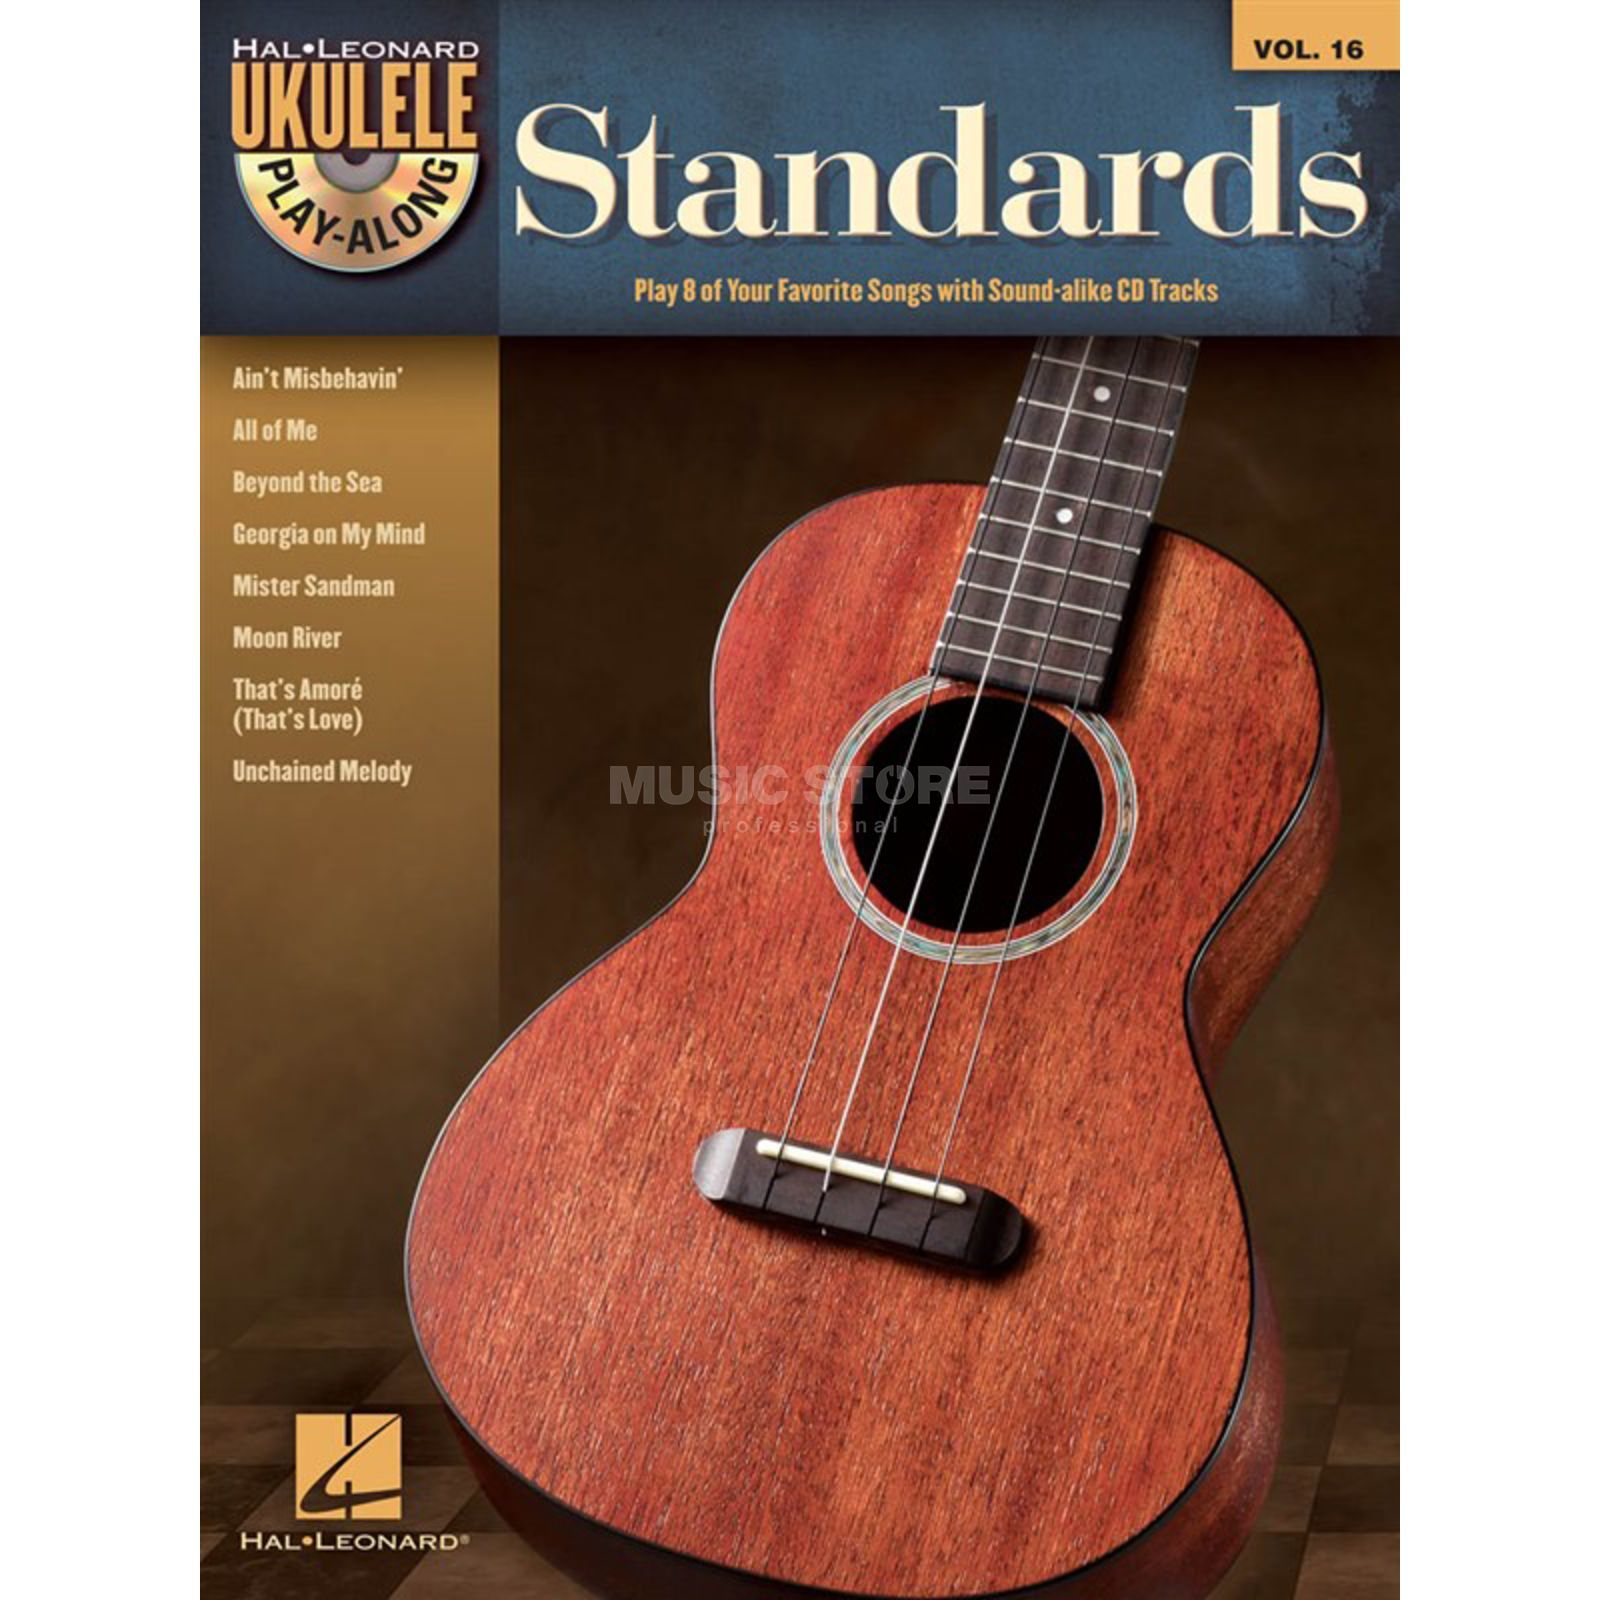 Hal Leonard Ukulele Play-Along: Standards Vol. 26, Ukulele mit CD Produktbild